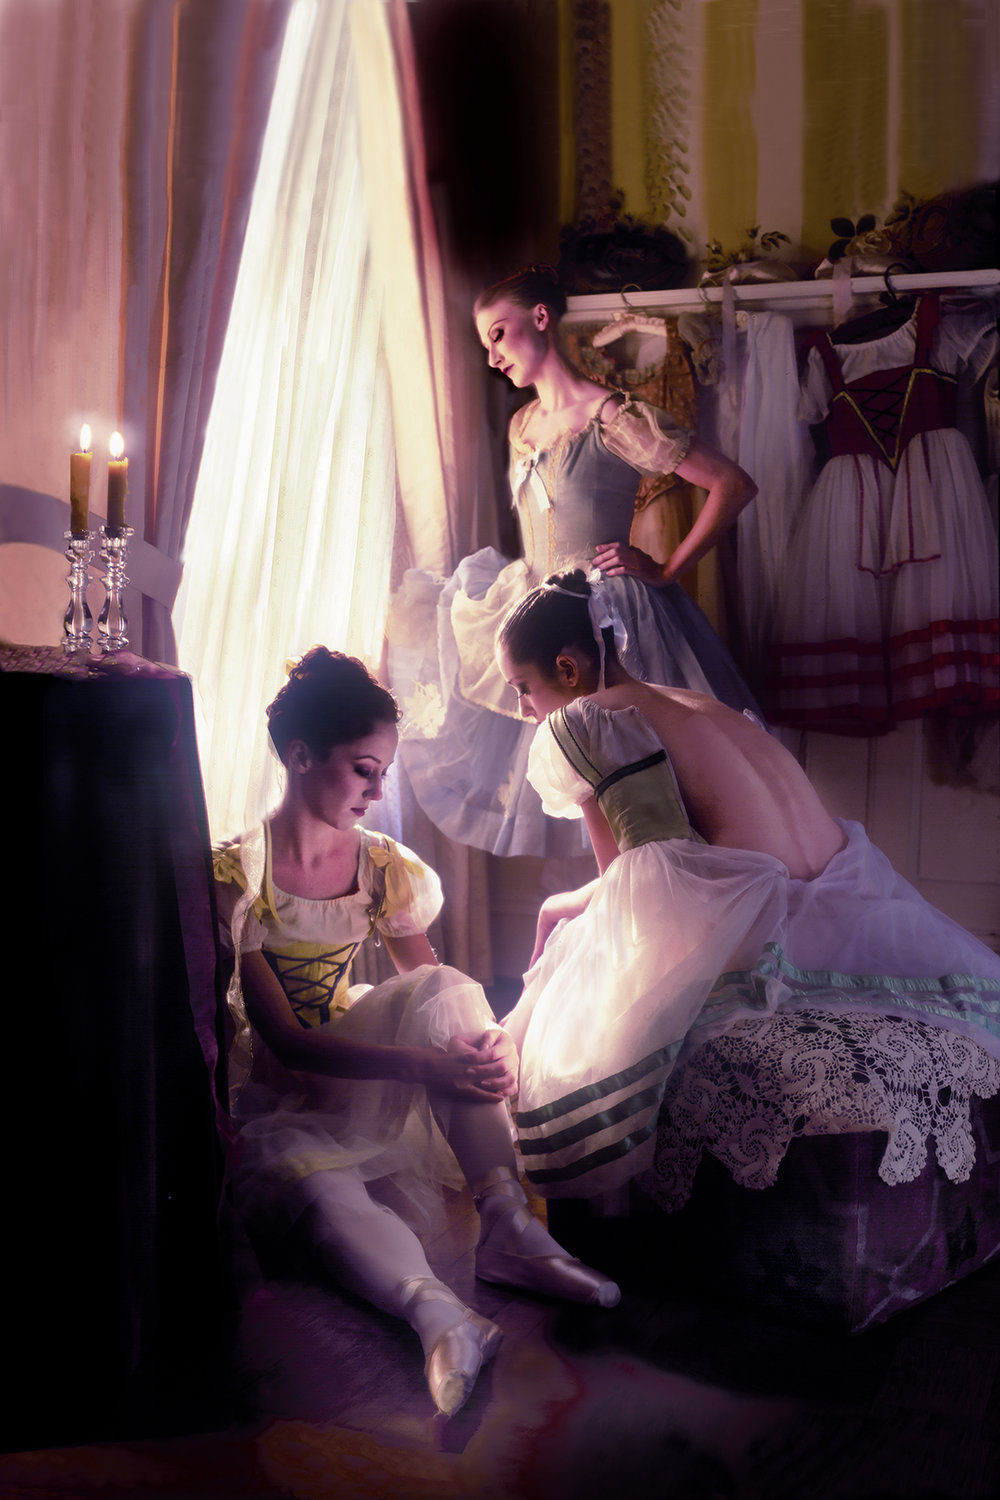 THREE DANCERS AT EASE BY WINDOW